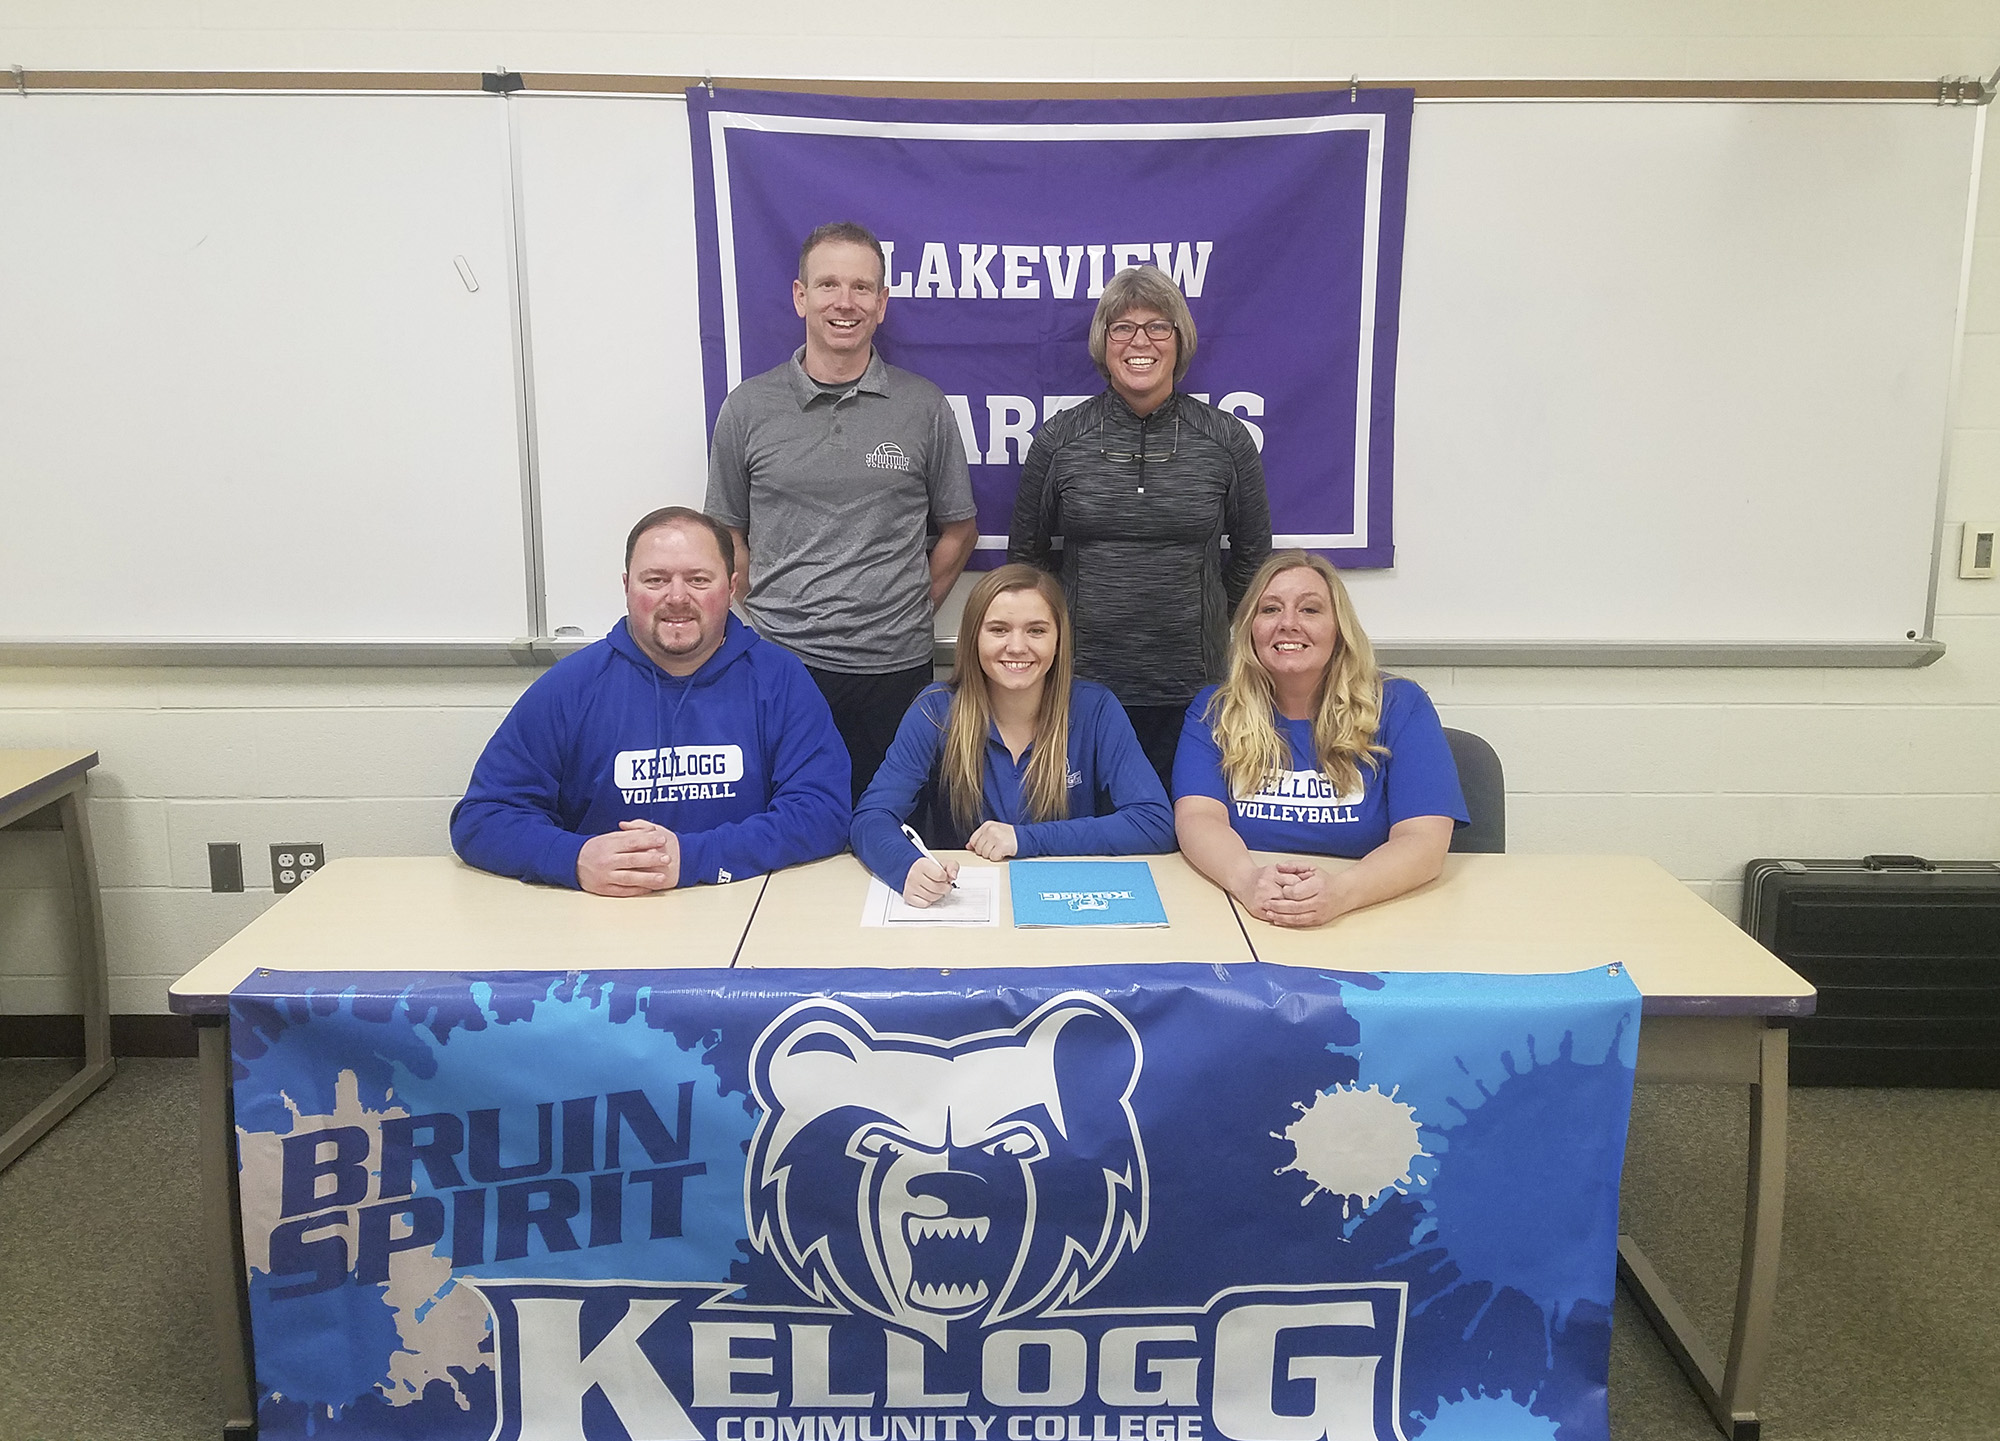 Pictured, in the front row, from left to right, are Eric Markos (father), KCC volleyball recruit Haidyn Markos and Courtney Markos (mother). Pictured in the back row, from left to right, are Lakeview High School coaches Jason Moore and Heather Sawyer.